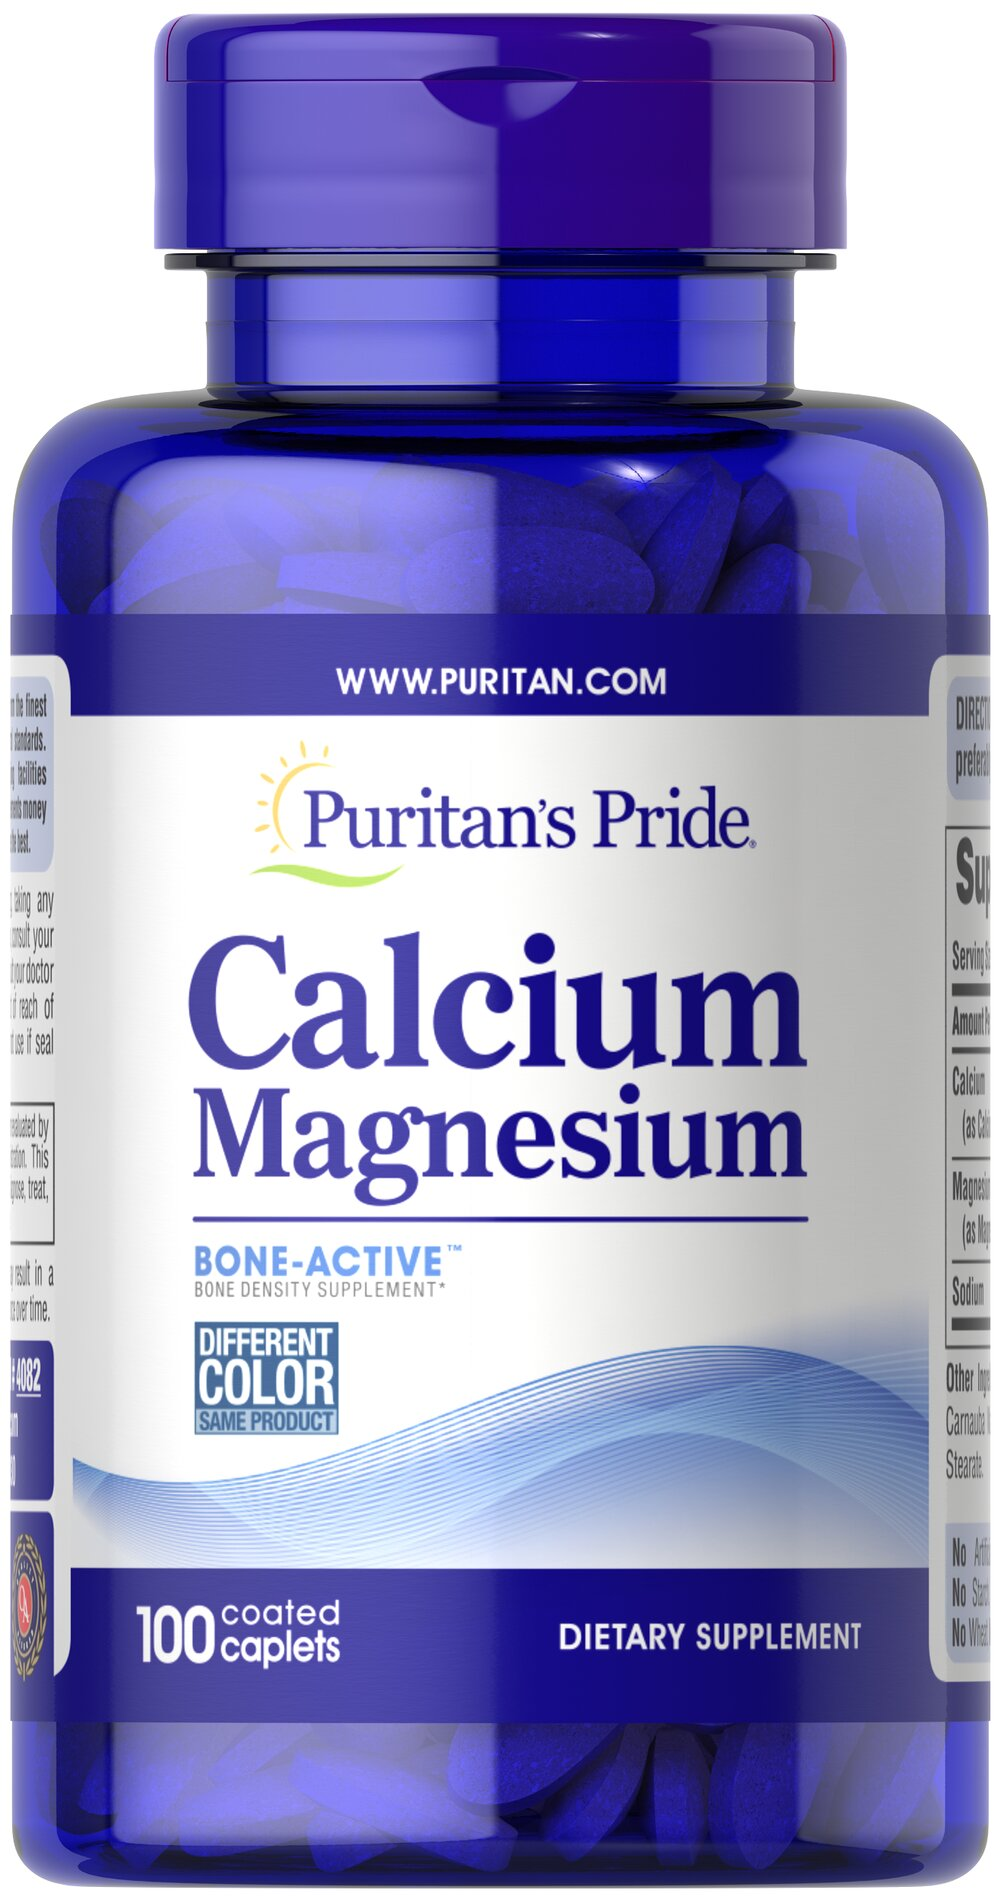 Calcium Magnesium Chelated <p>Looking for extra support for your bones?</p><p>Puritan's Pride offers a high quality Calcium and Magnesium supplement that delivers 500 mg Calcium and 250 mg Magnesium in a chelated form for optimal absorption.</p> 100 Caplets 500 mg/250 mg $8.99